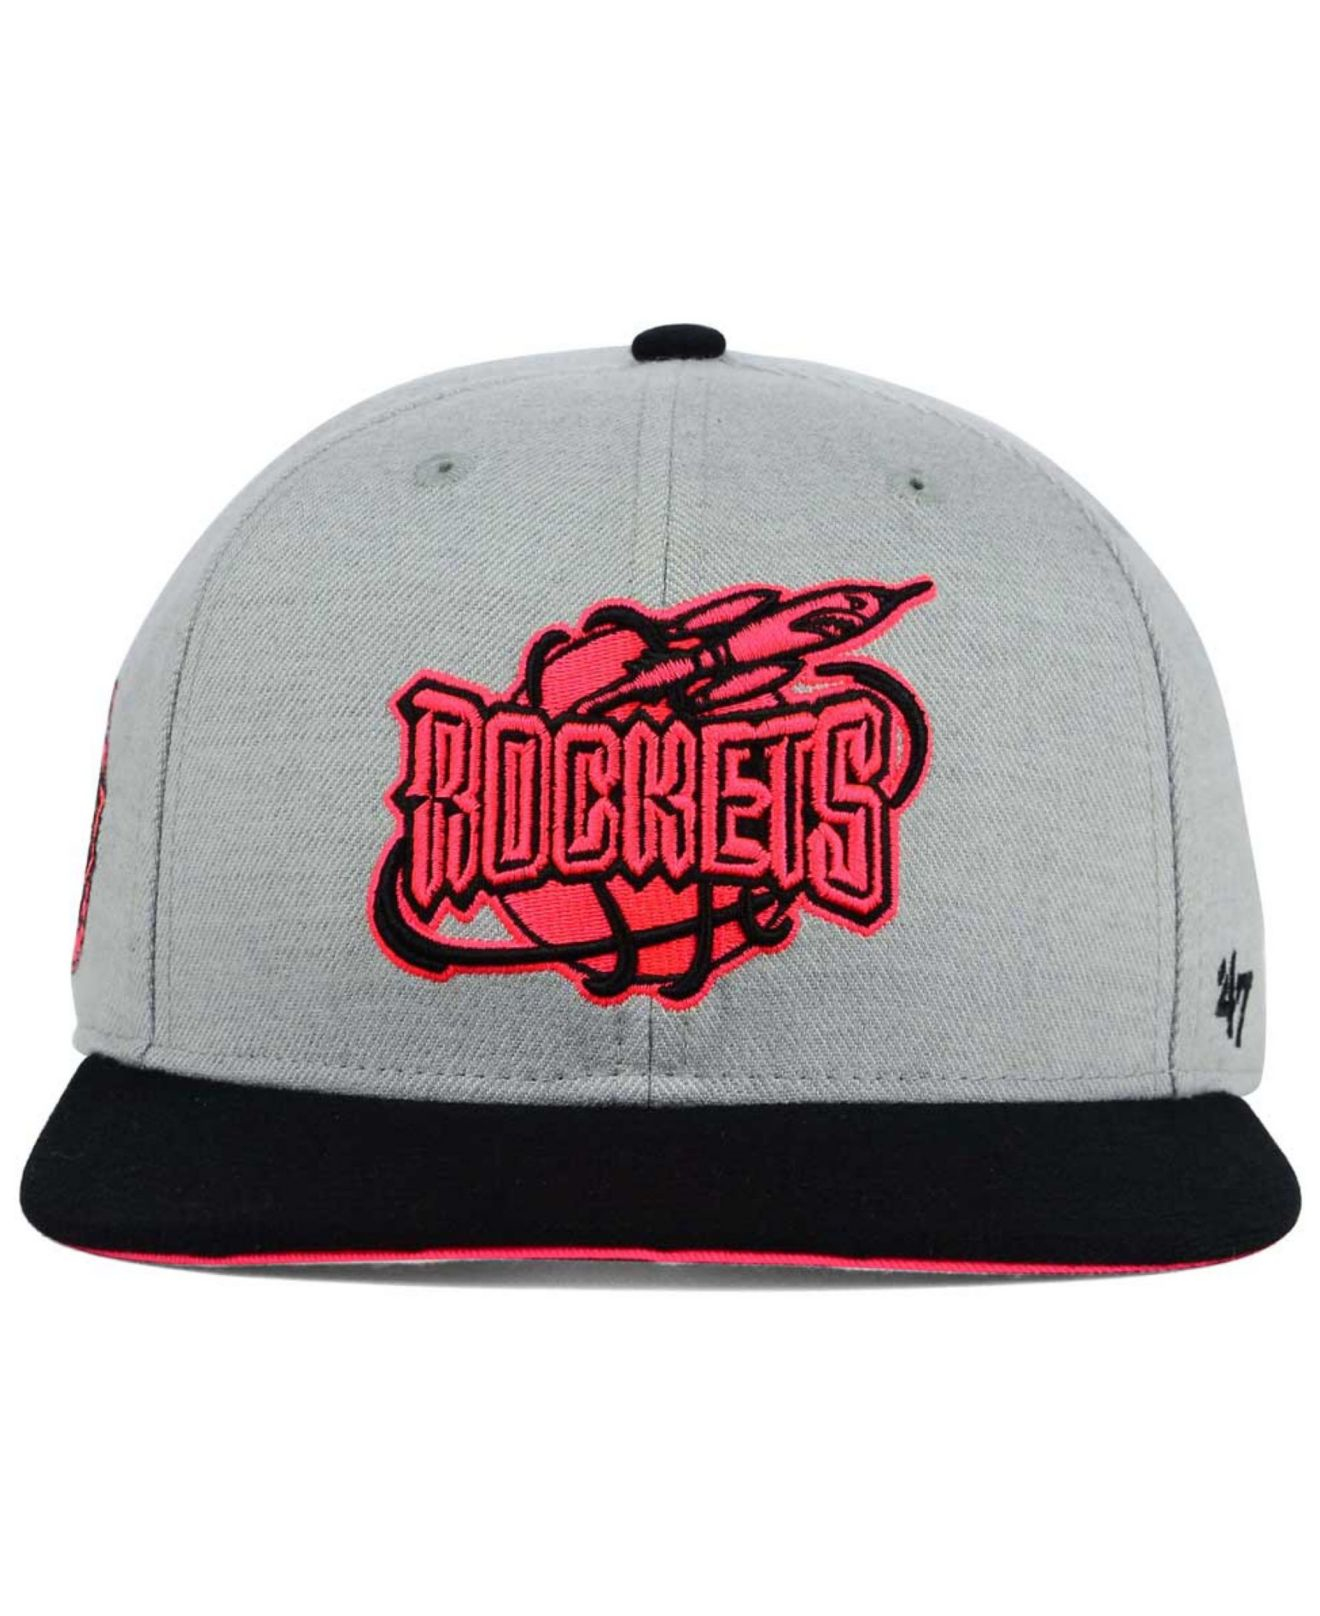 Lyst - 47 Brand Houston Rockets Wrist Shot Snapback Cap in Gray for Men 2766ad1df7bf